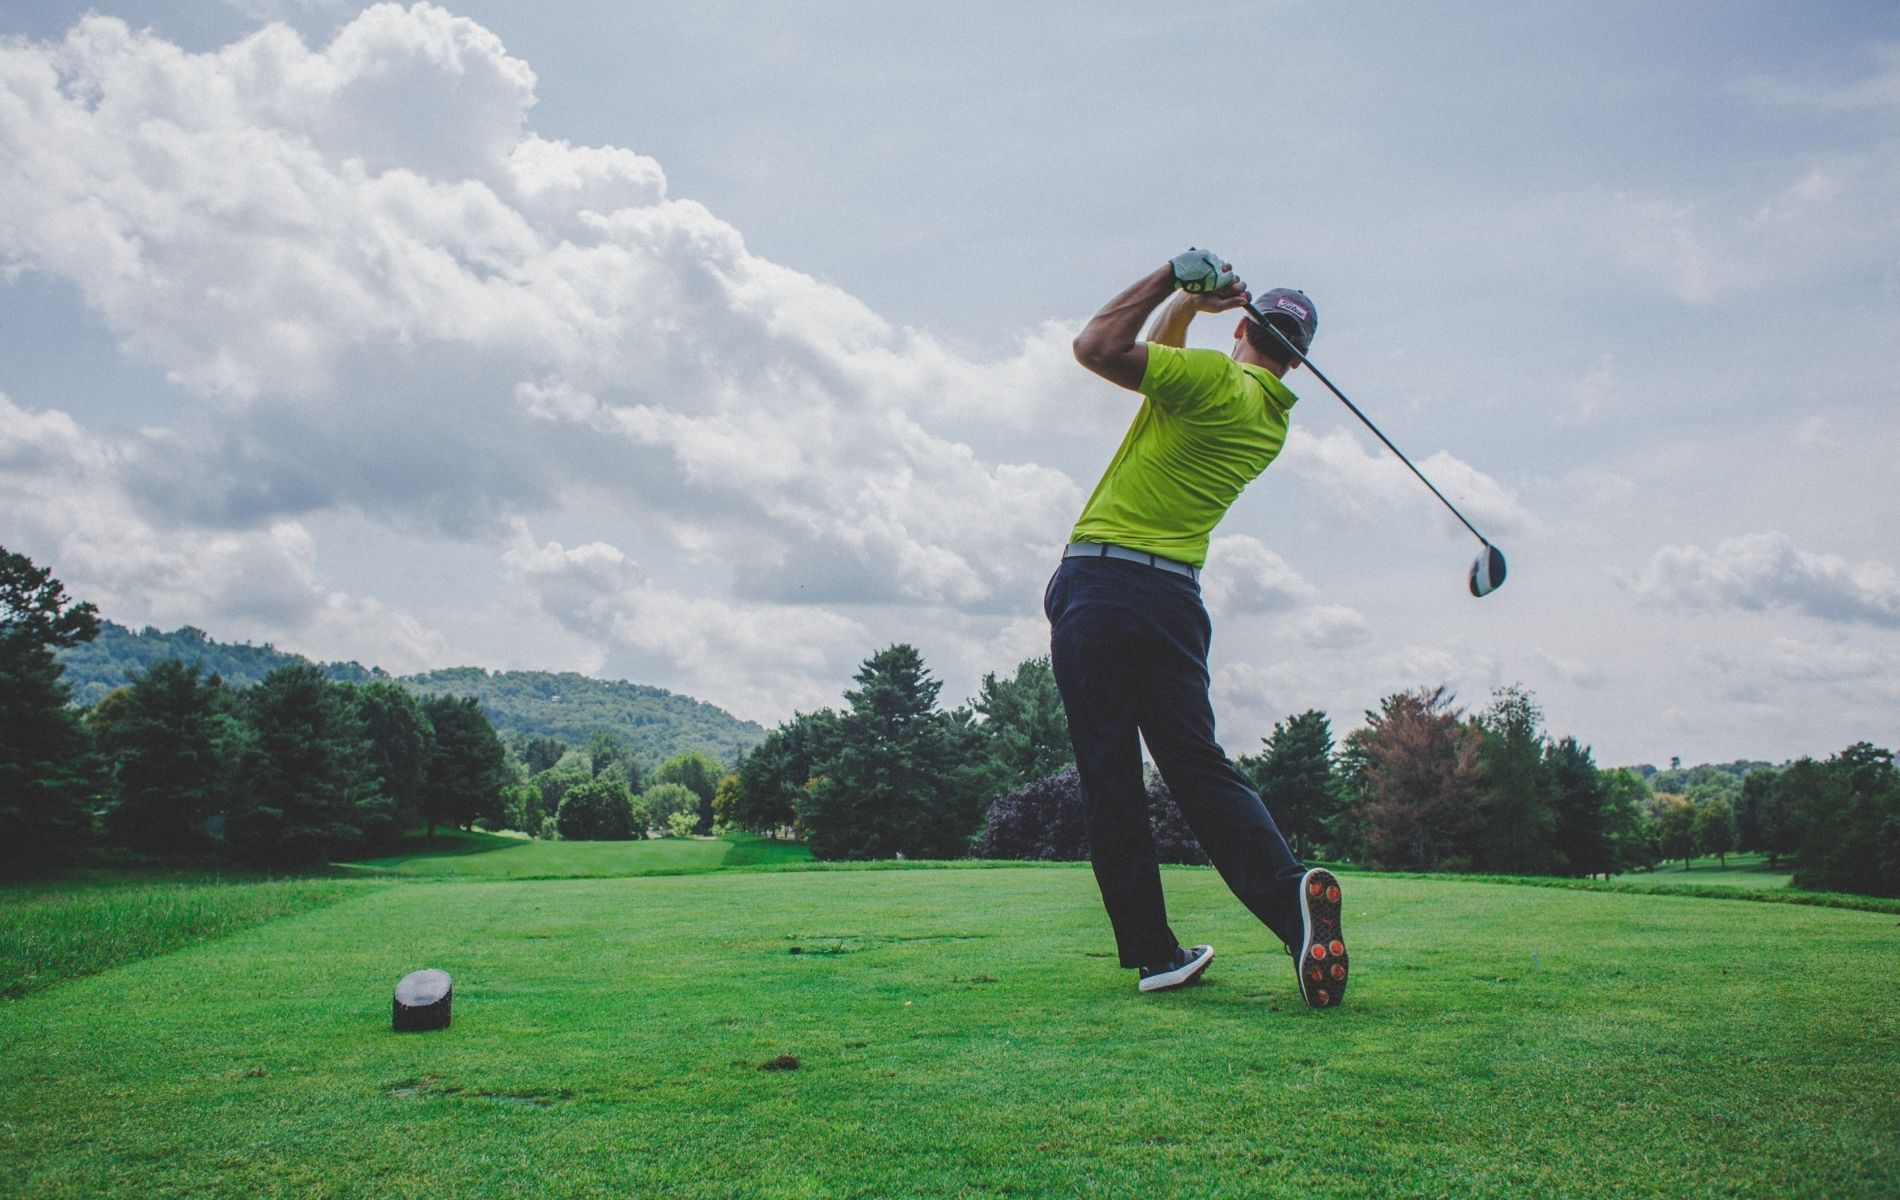 A Beginner's Guide To Golf By Malaysia's Top Pro Golfer Gavin Green